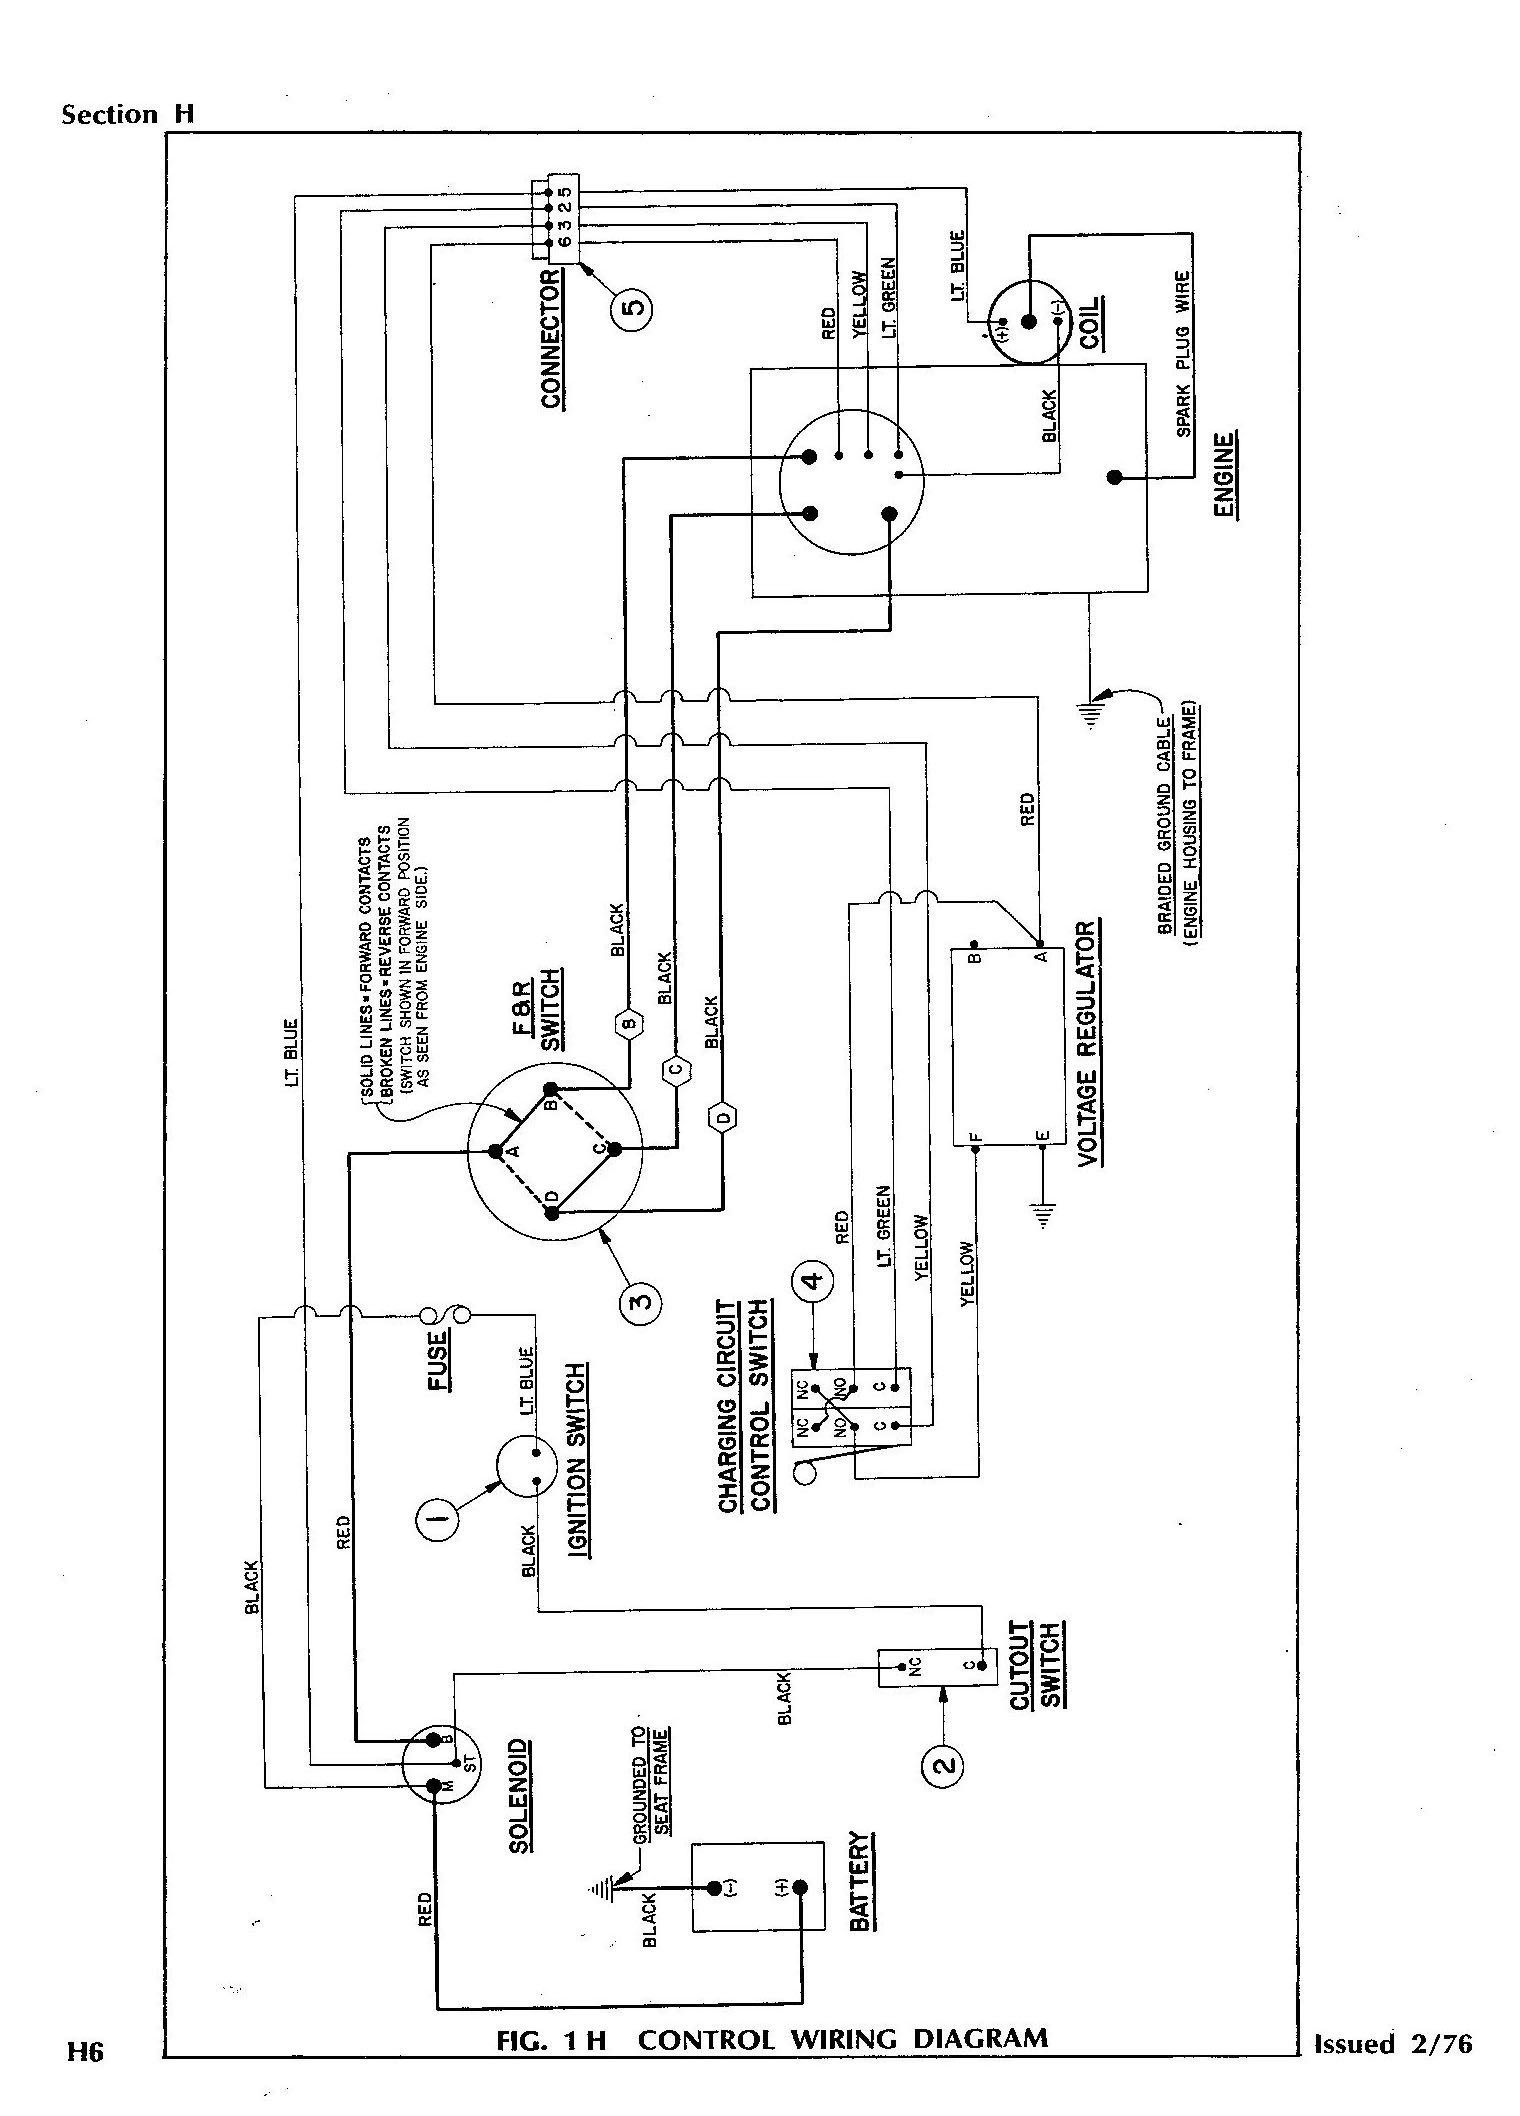 Club Car Wiring Diagram Gas - Wiring Diagram for Club Car Electric Golf Cart Valid Wiring Diagram for Club Car Gas Valid 2q